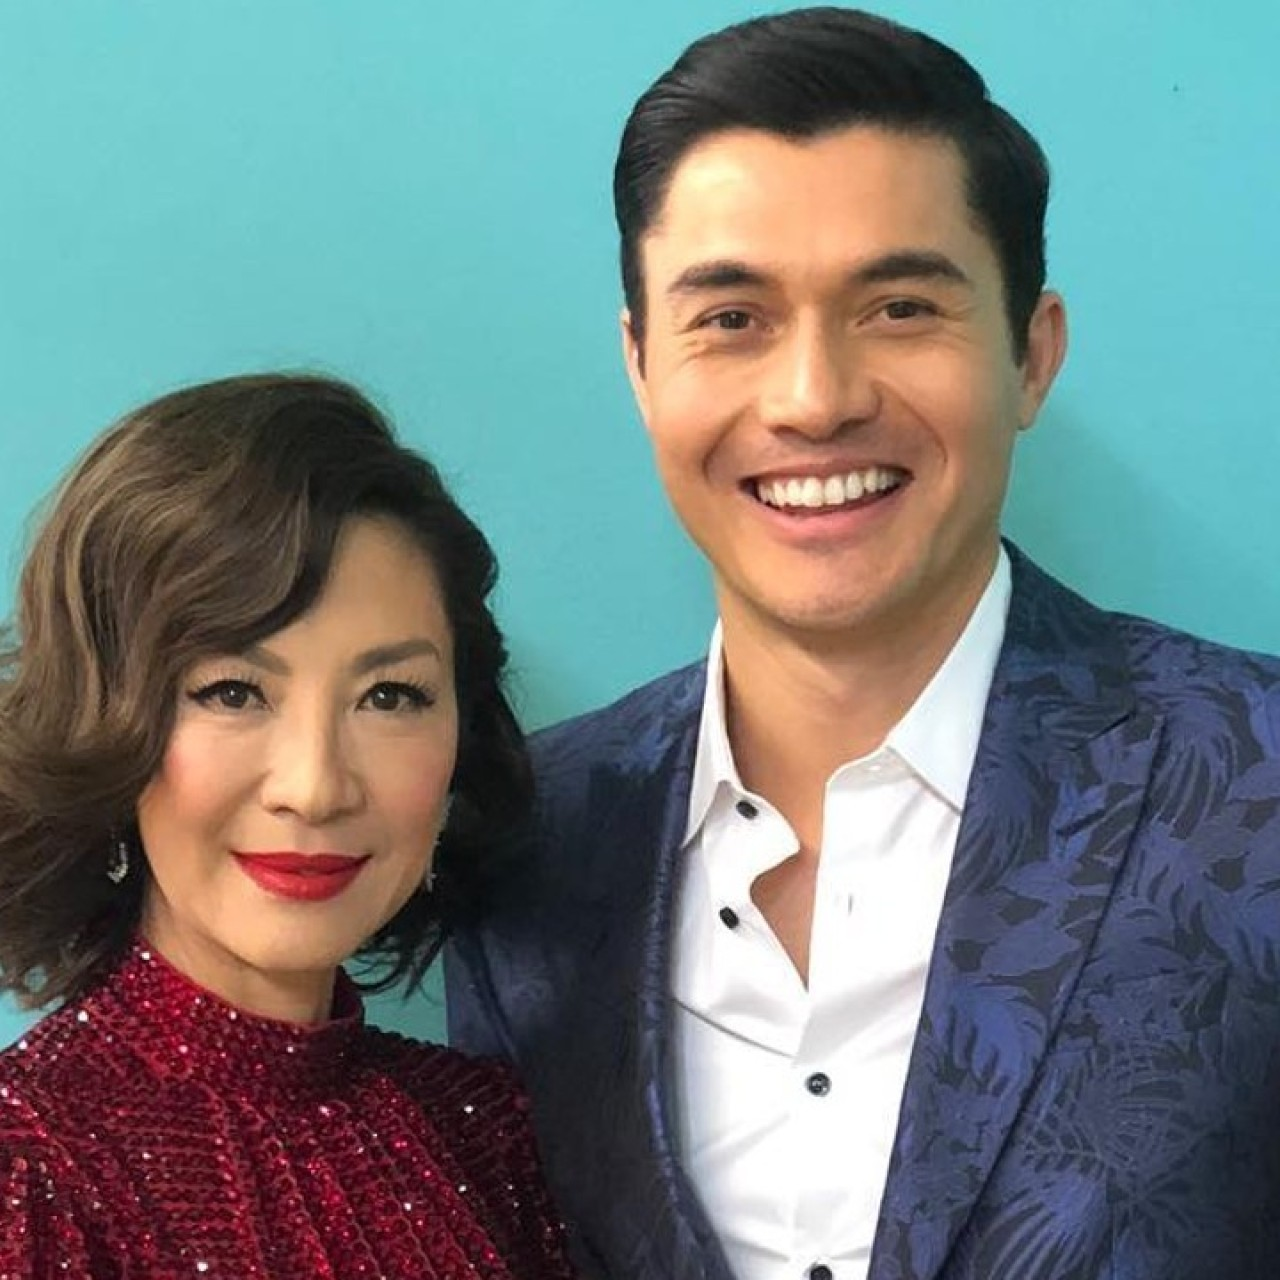 Crazy Rich Asians stars Michelle Yeoh and Henry Golding to reunite